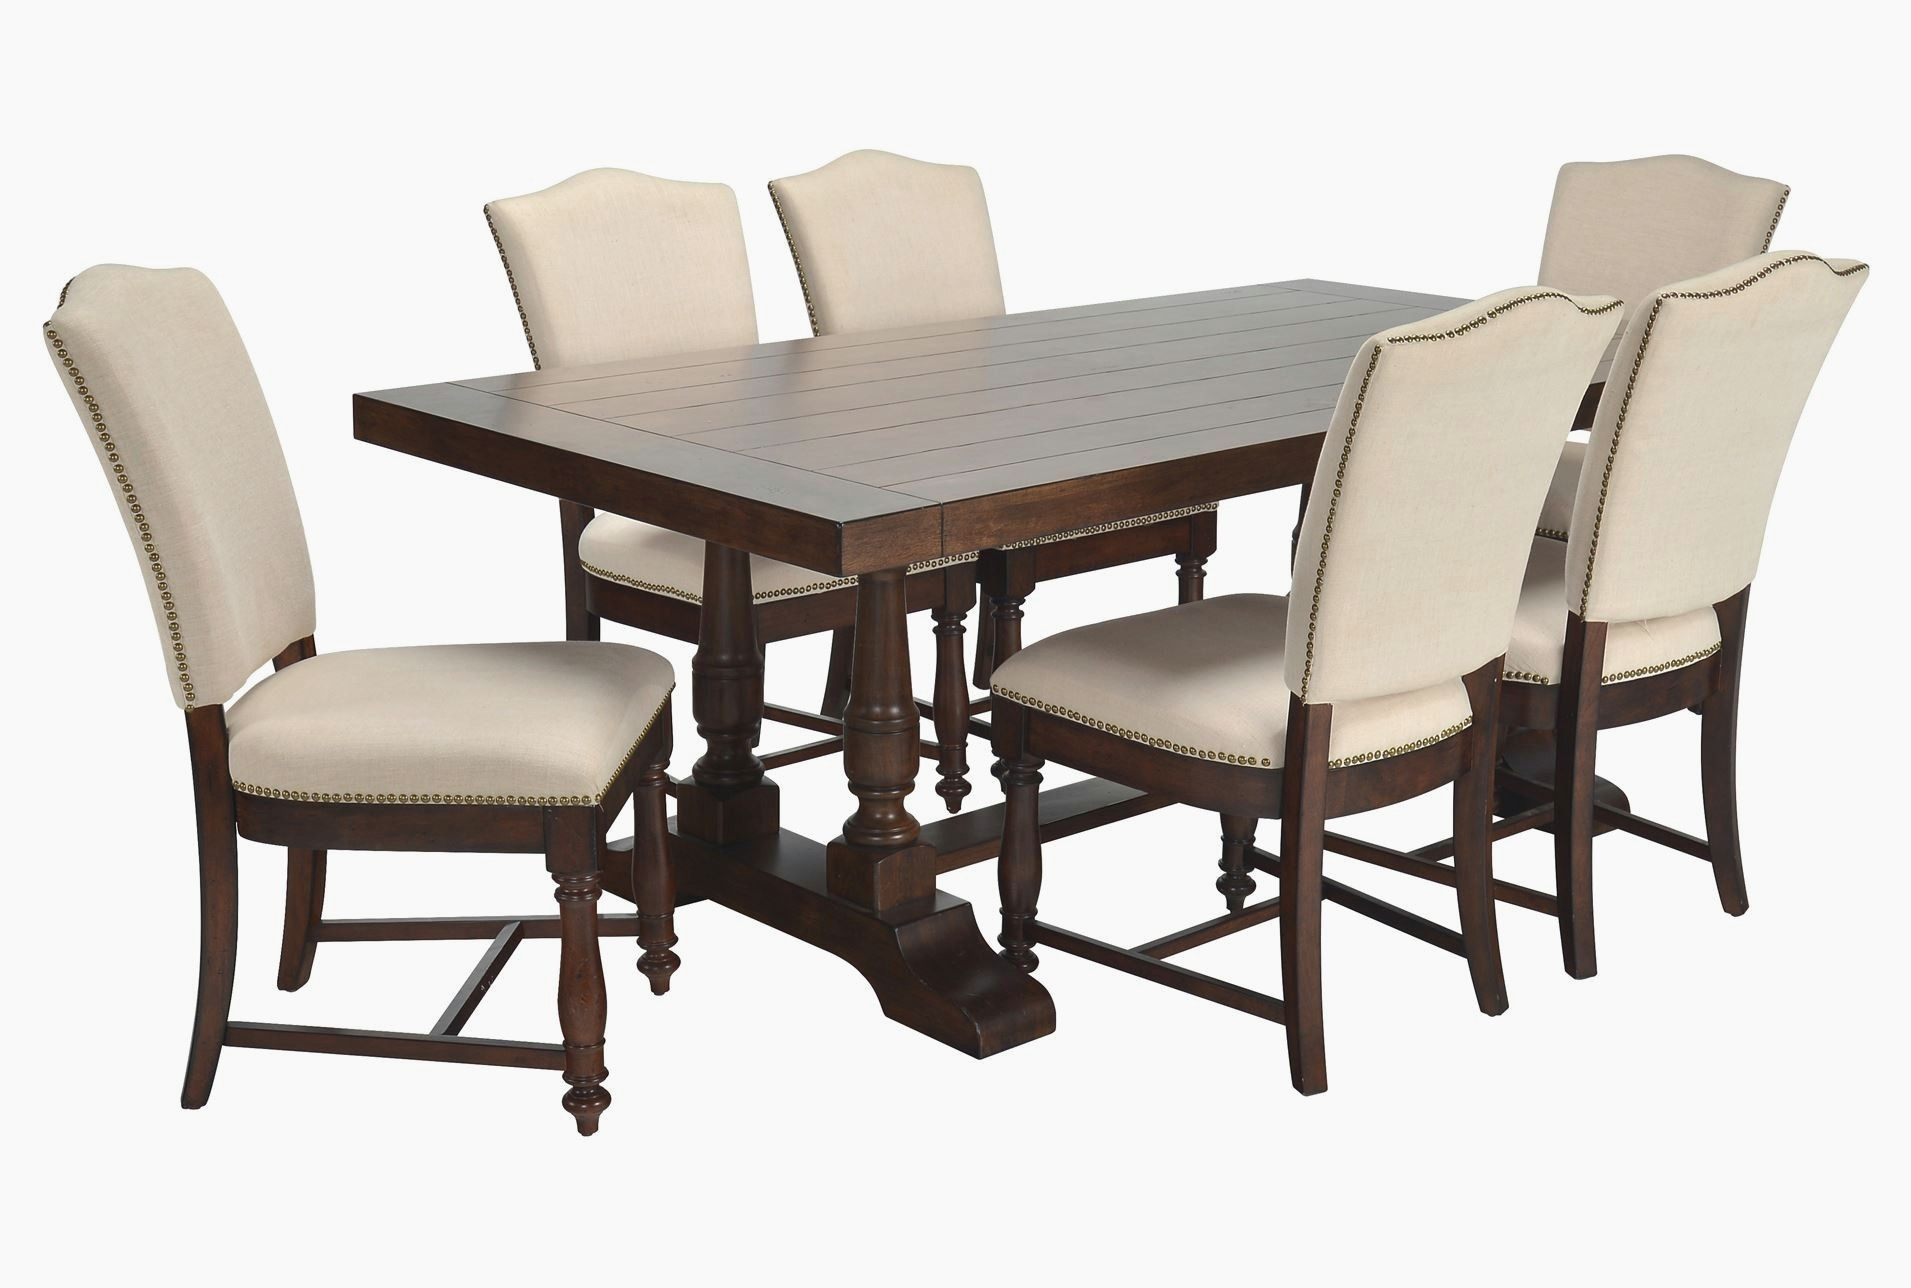 Living Spaces Dining Table Set Living Spaces Dining For Living Throughout Recent Jaxon Grey 5 Piece Round Extension Dining Sets With Wood Chairs (Photo 17 of 20)